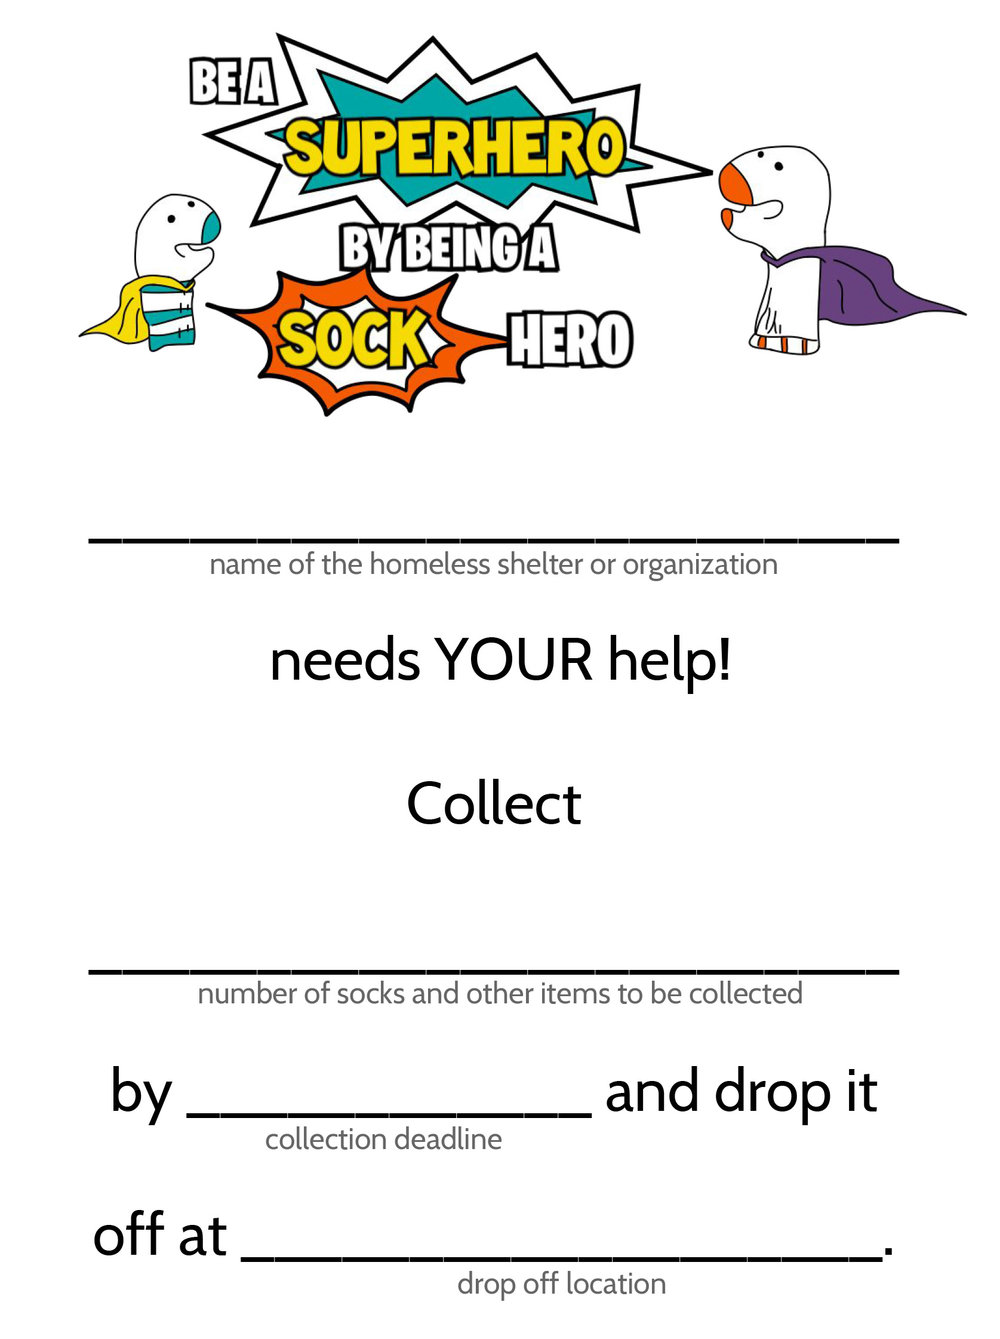 Superhero+Sock+Puppets+Flyer.jpg